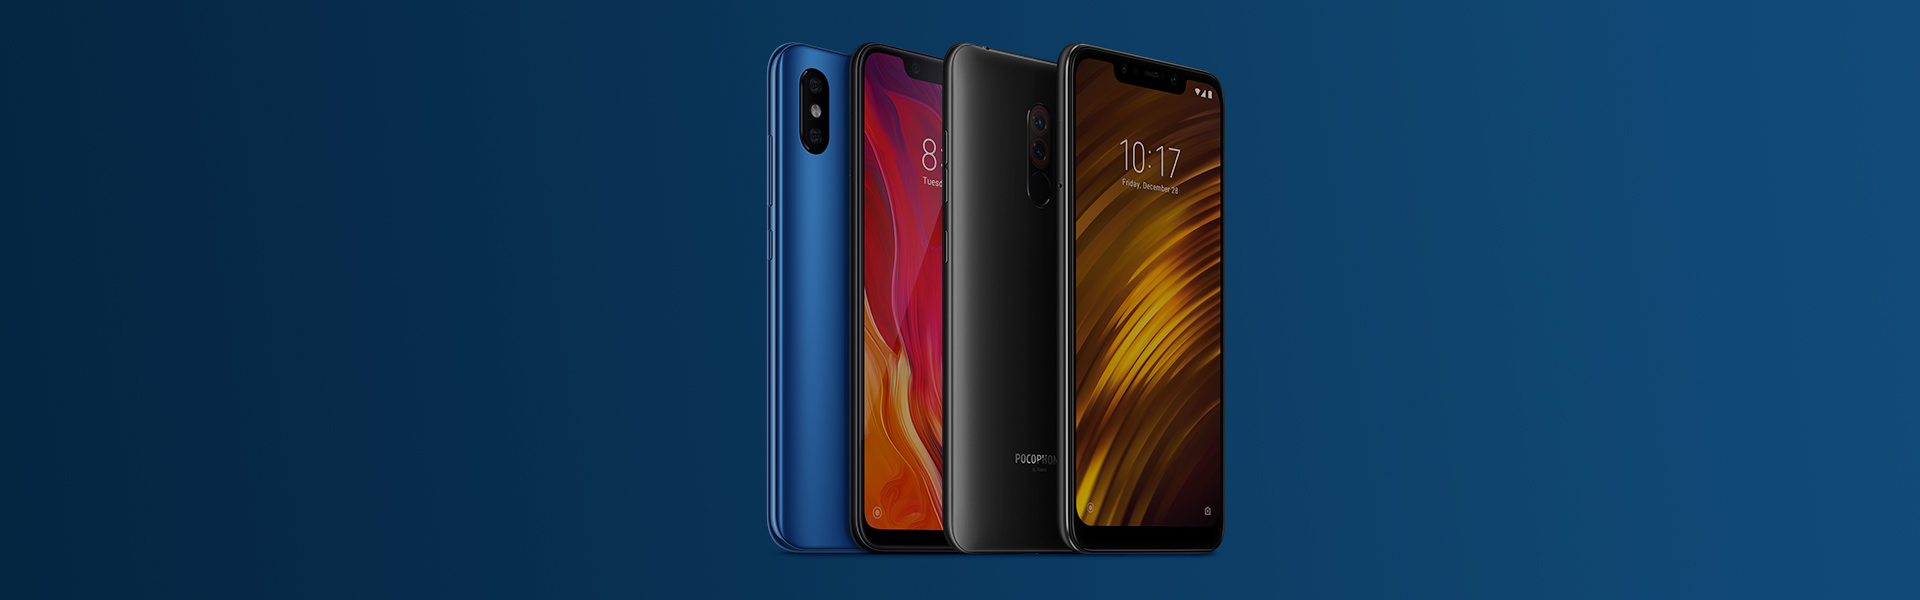 MI 8 AND POCOPHONE F1: A TALE OF TWO AFFORDABLE FLAGSHIPS